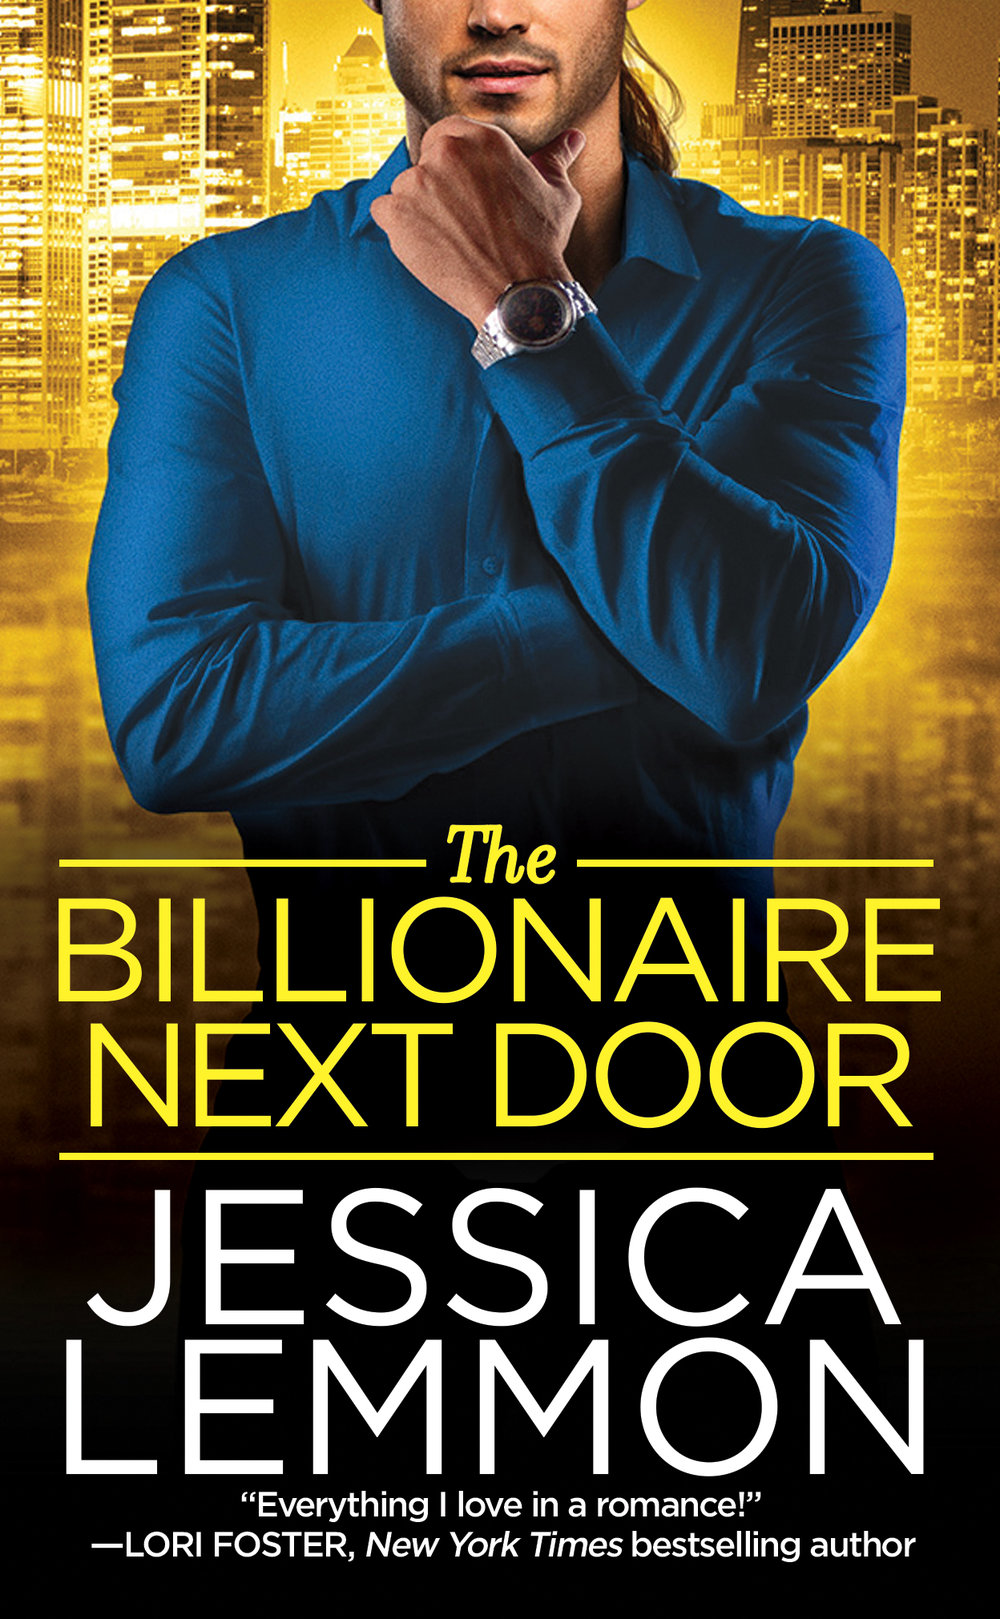 The Billionaire Next Door.jpg